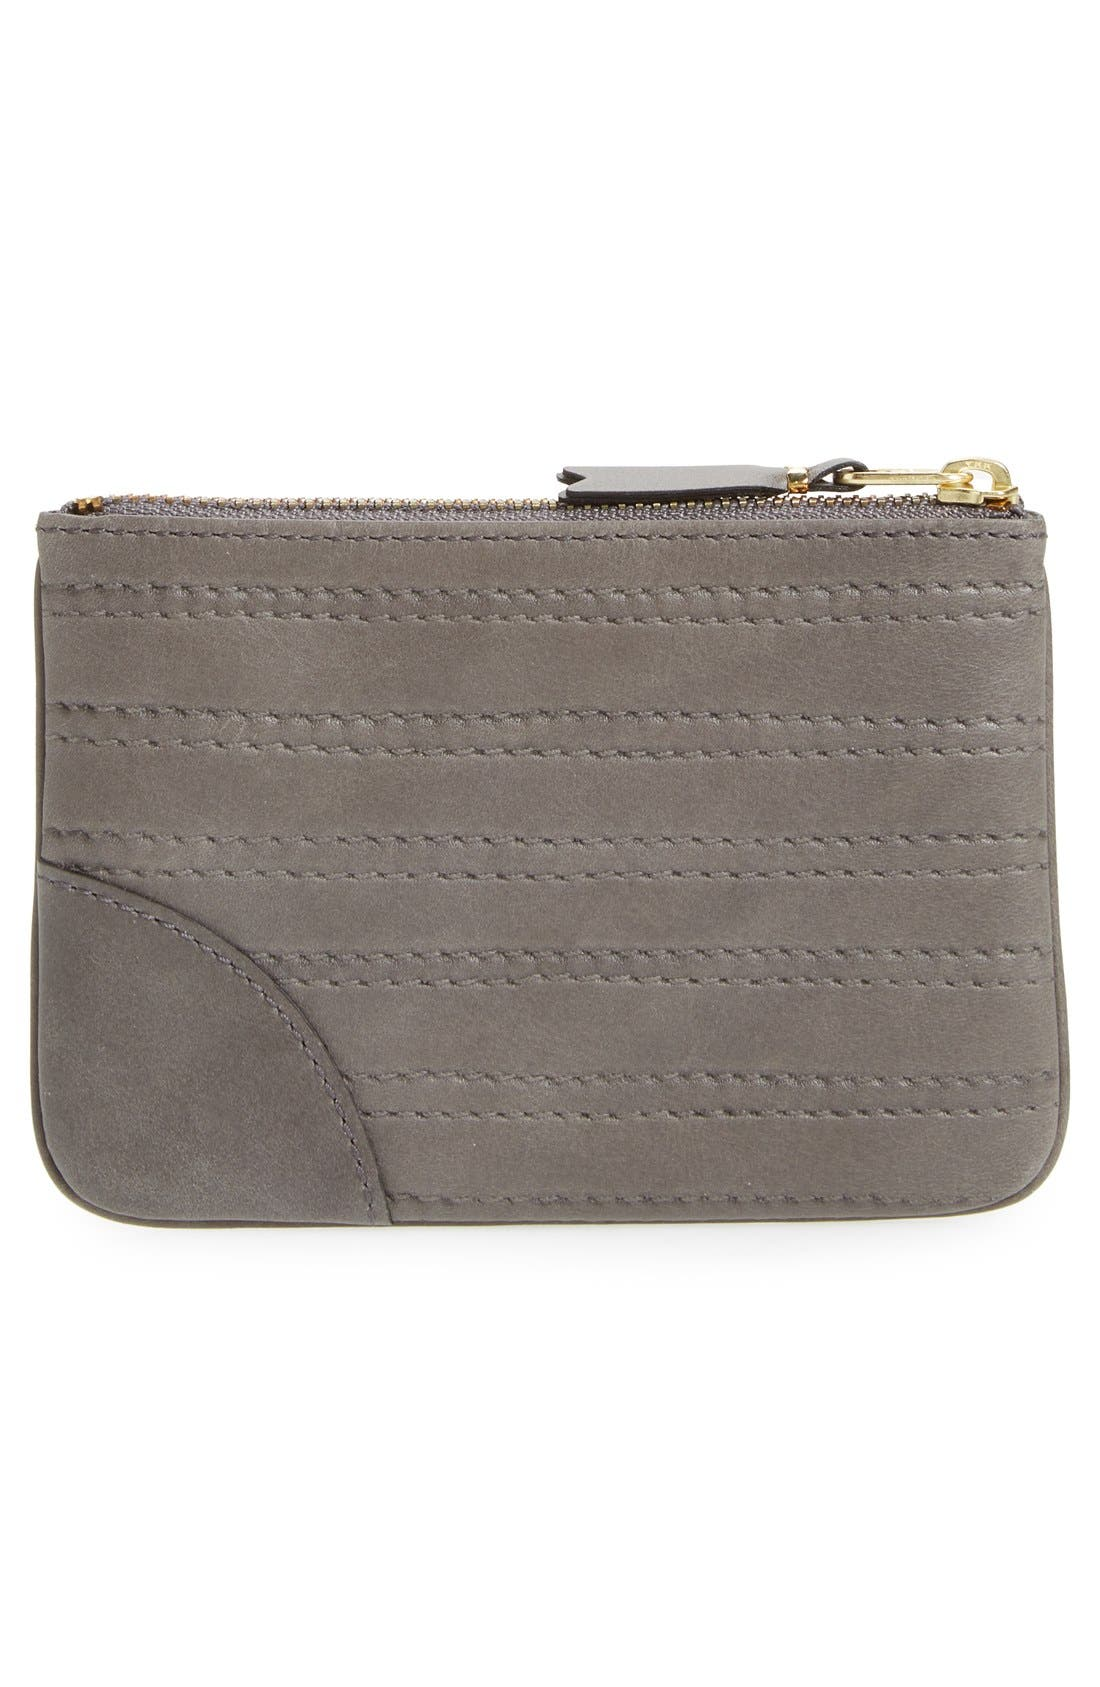 Embossed Leather Top Zip Pouch Wallet,                             Alternate thumbnail 2, color,                             Grey